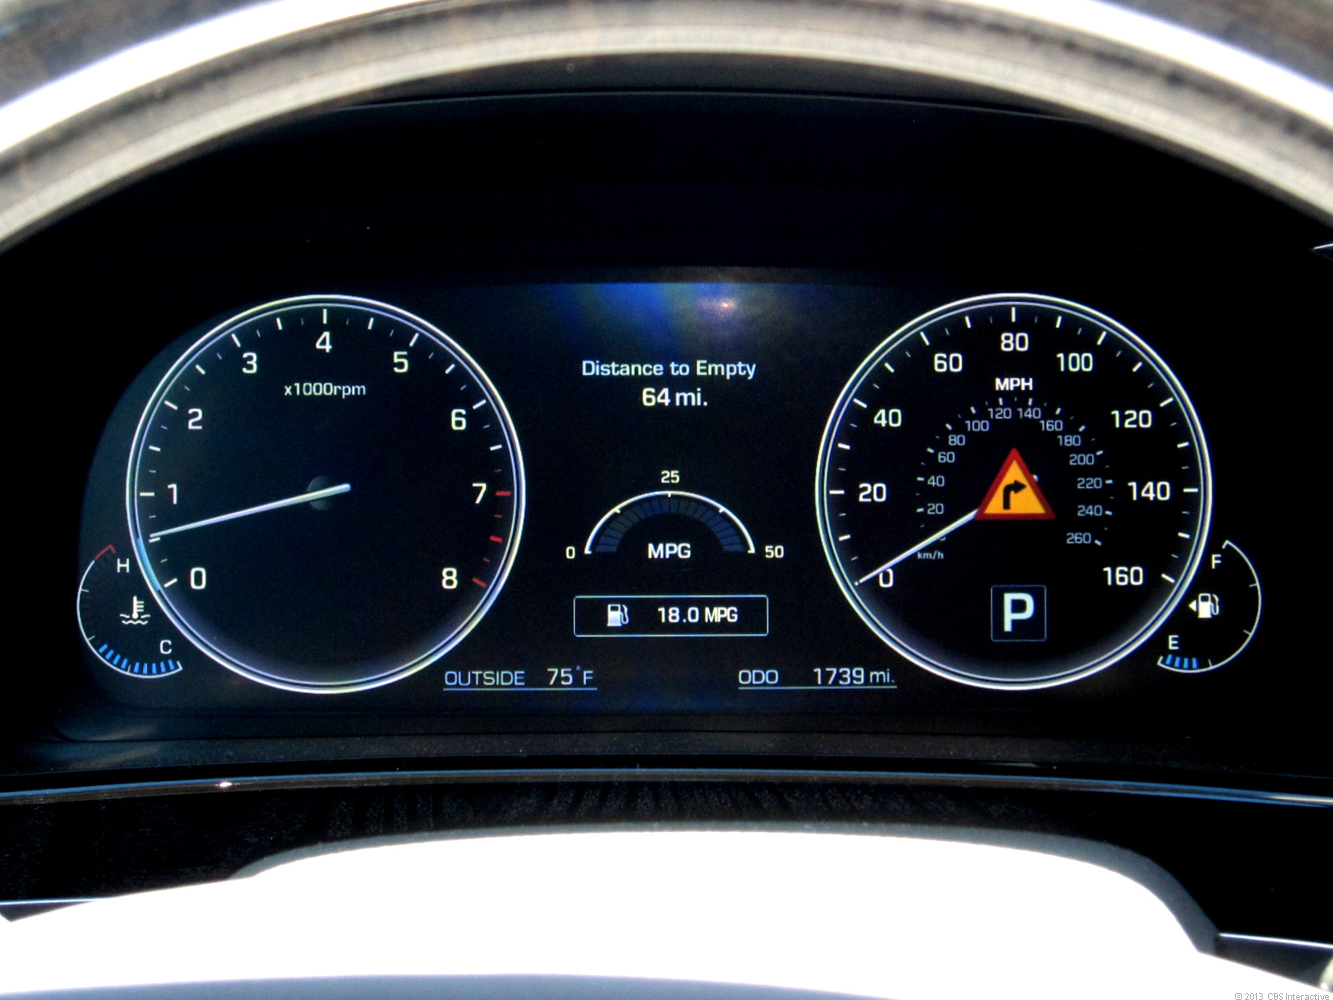 Hyundai's graphics make these virtual gauges look real.